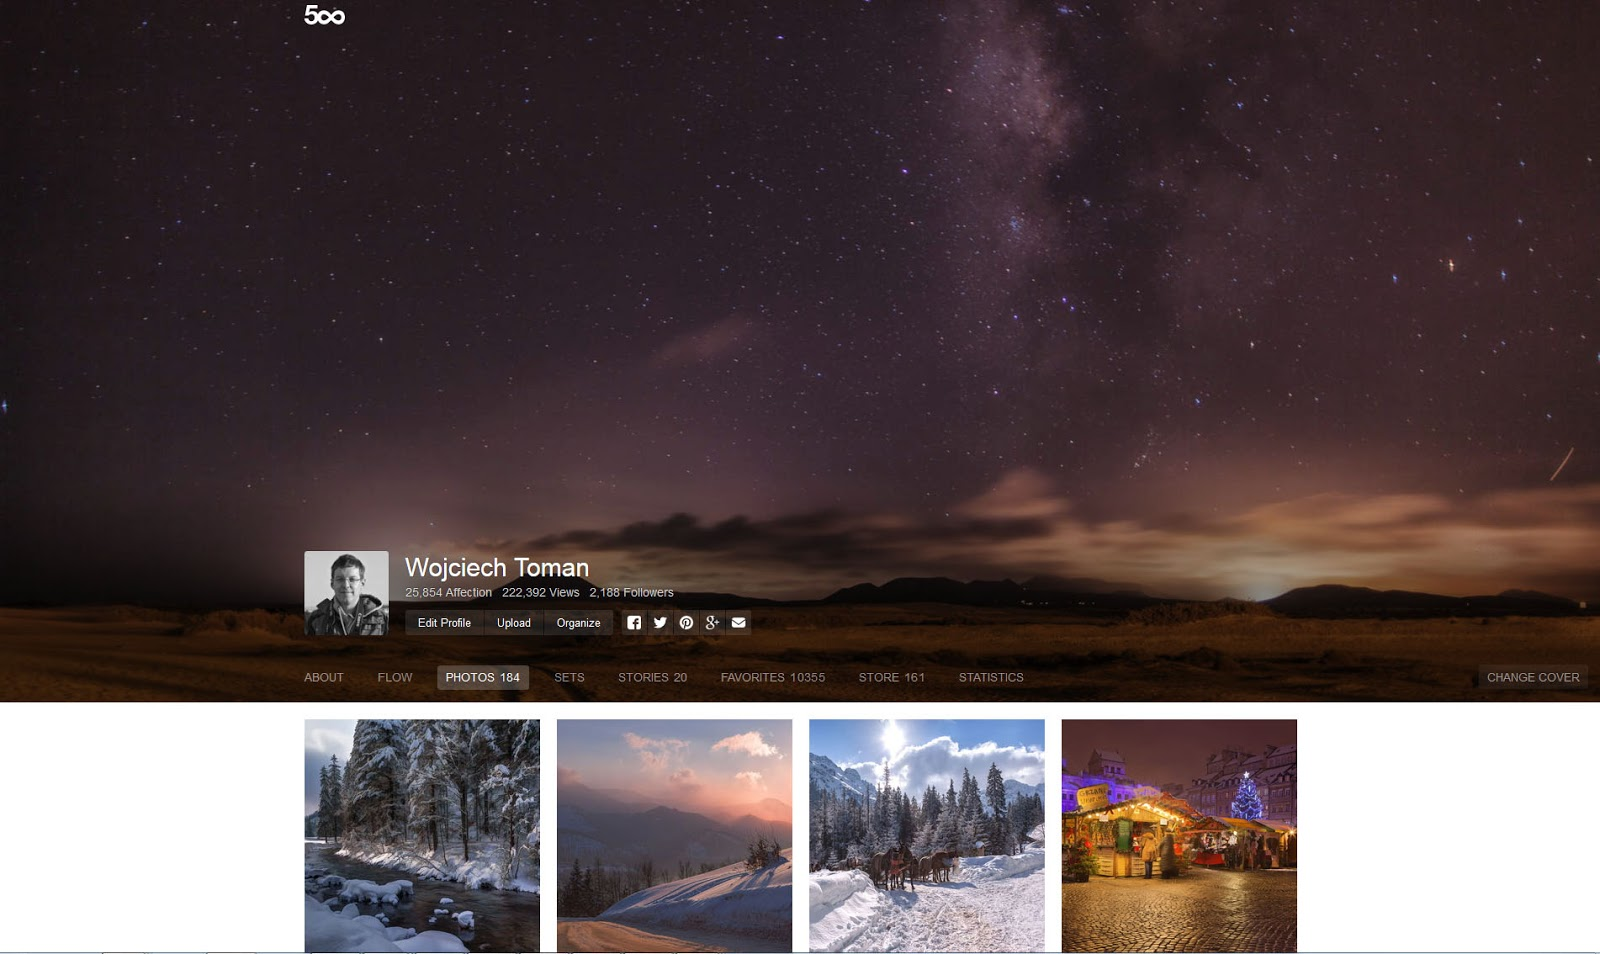 New profile page on 500px